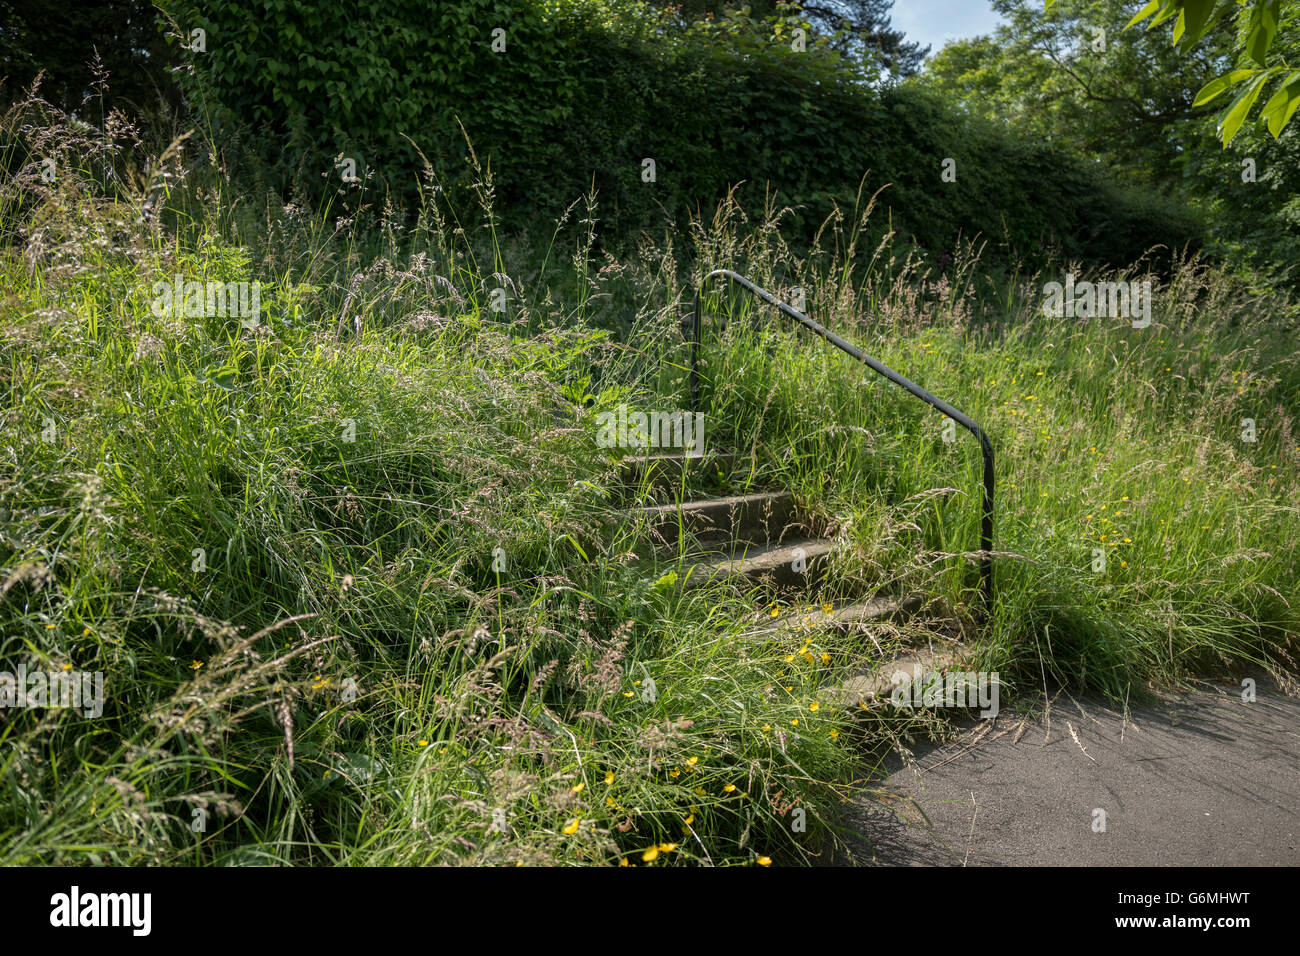 how to clear overgrown grass